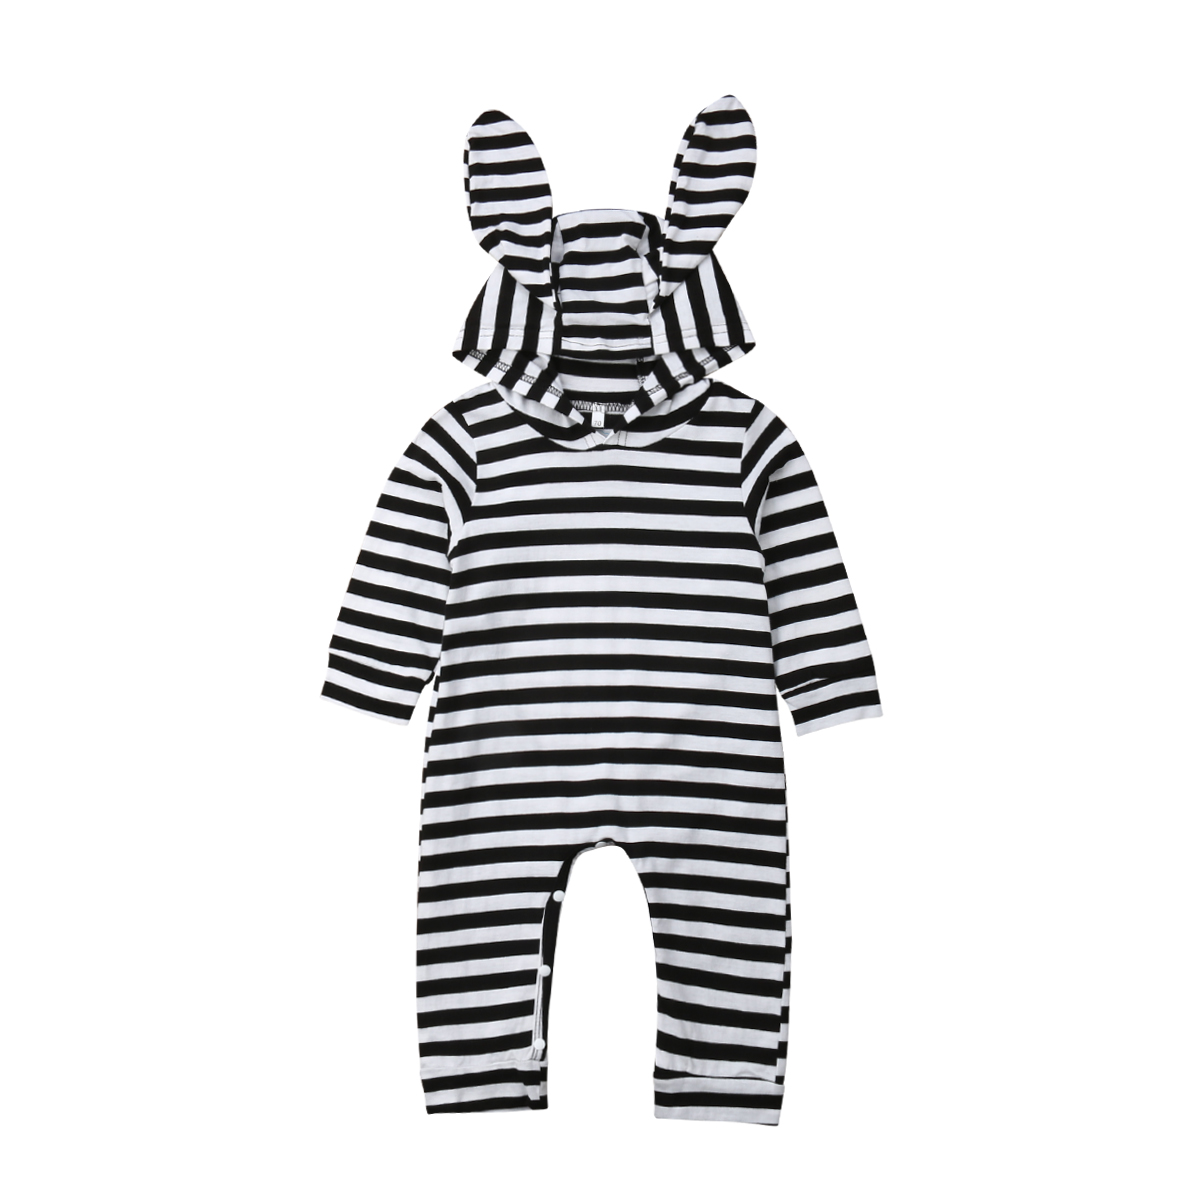 a96227b6e244 0-24M Casual Newborn Baby Boy Girl Long Sleeve Bunny Ear Hooded Striped Romper  Jumpsuit